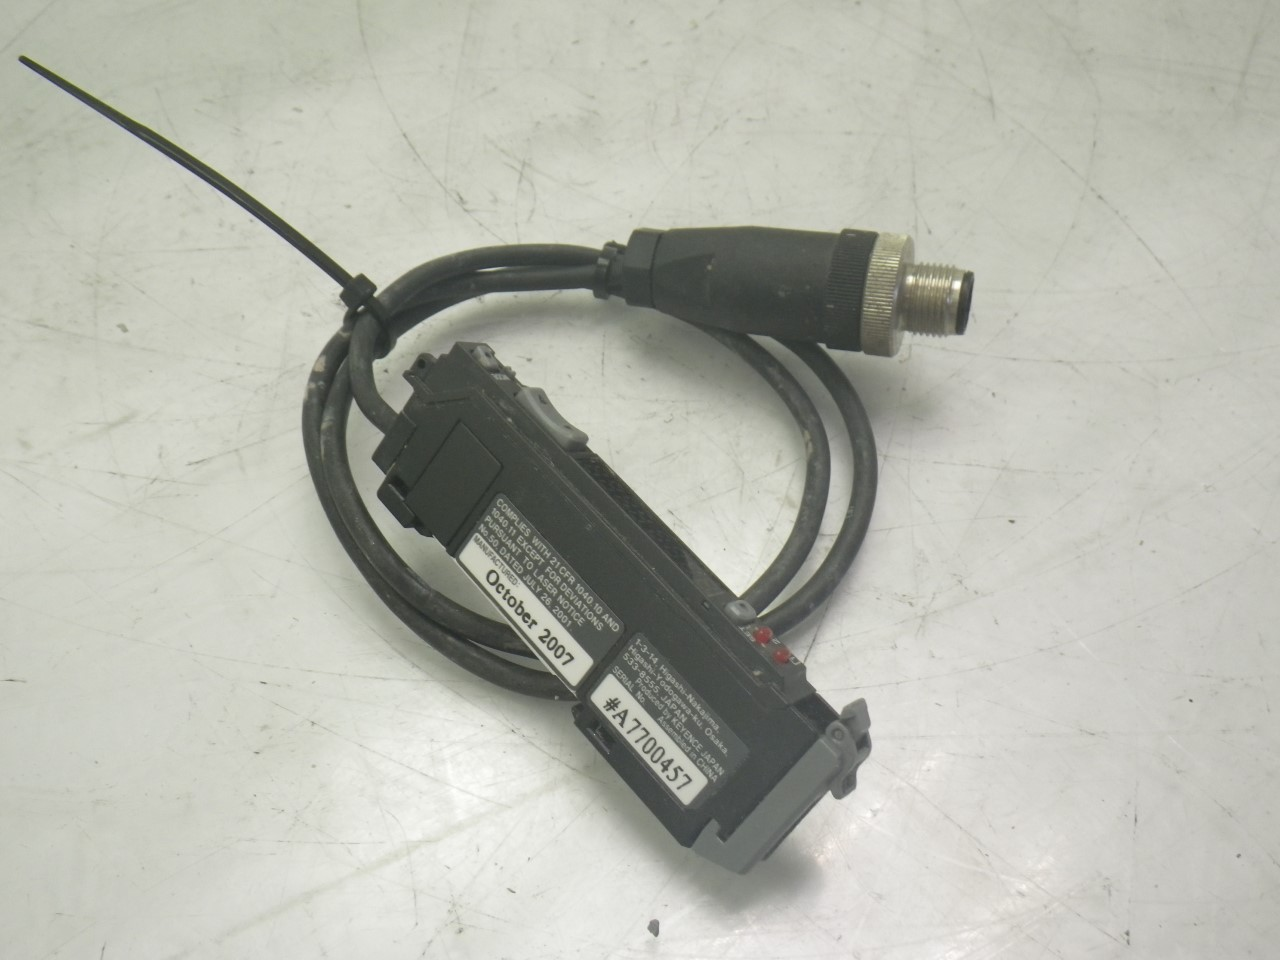 IMGP0487LV-11SAP Keyence Optical Fiber Digital Laser Sensor 12-24vdc (5)